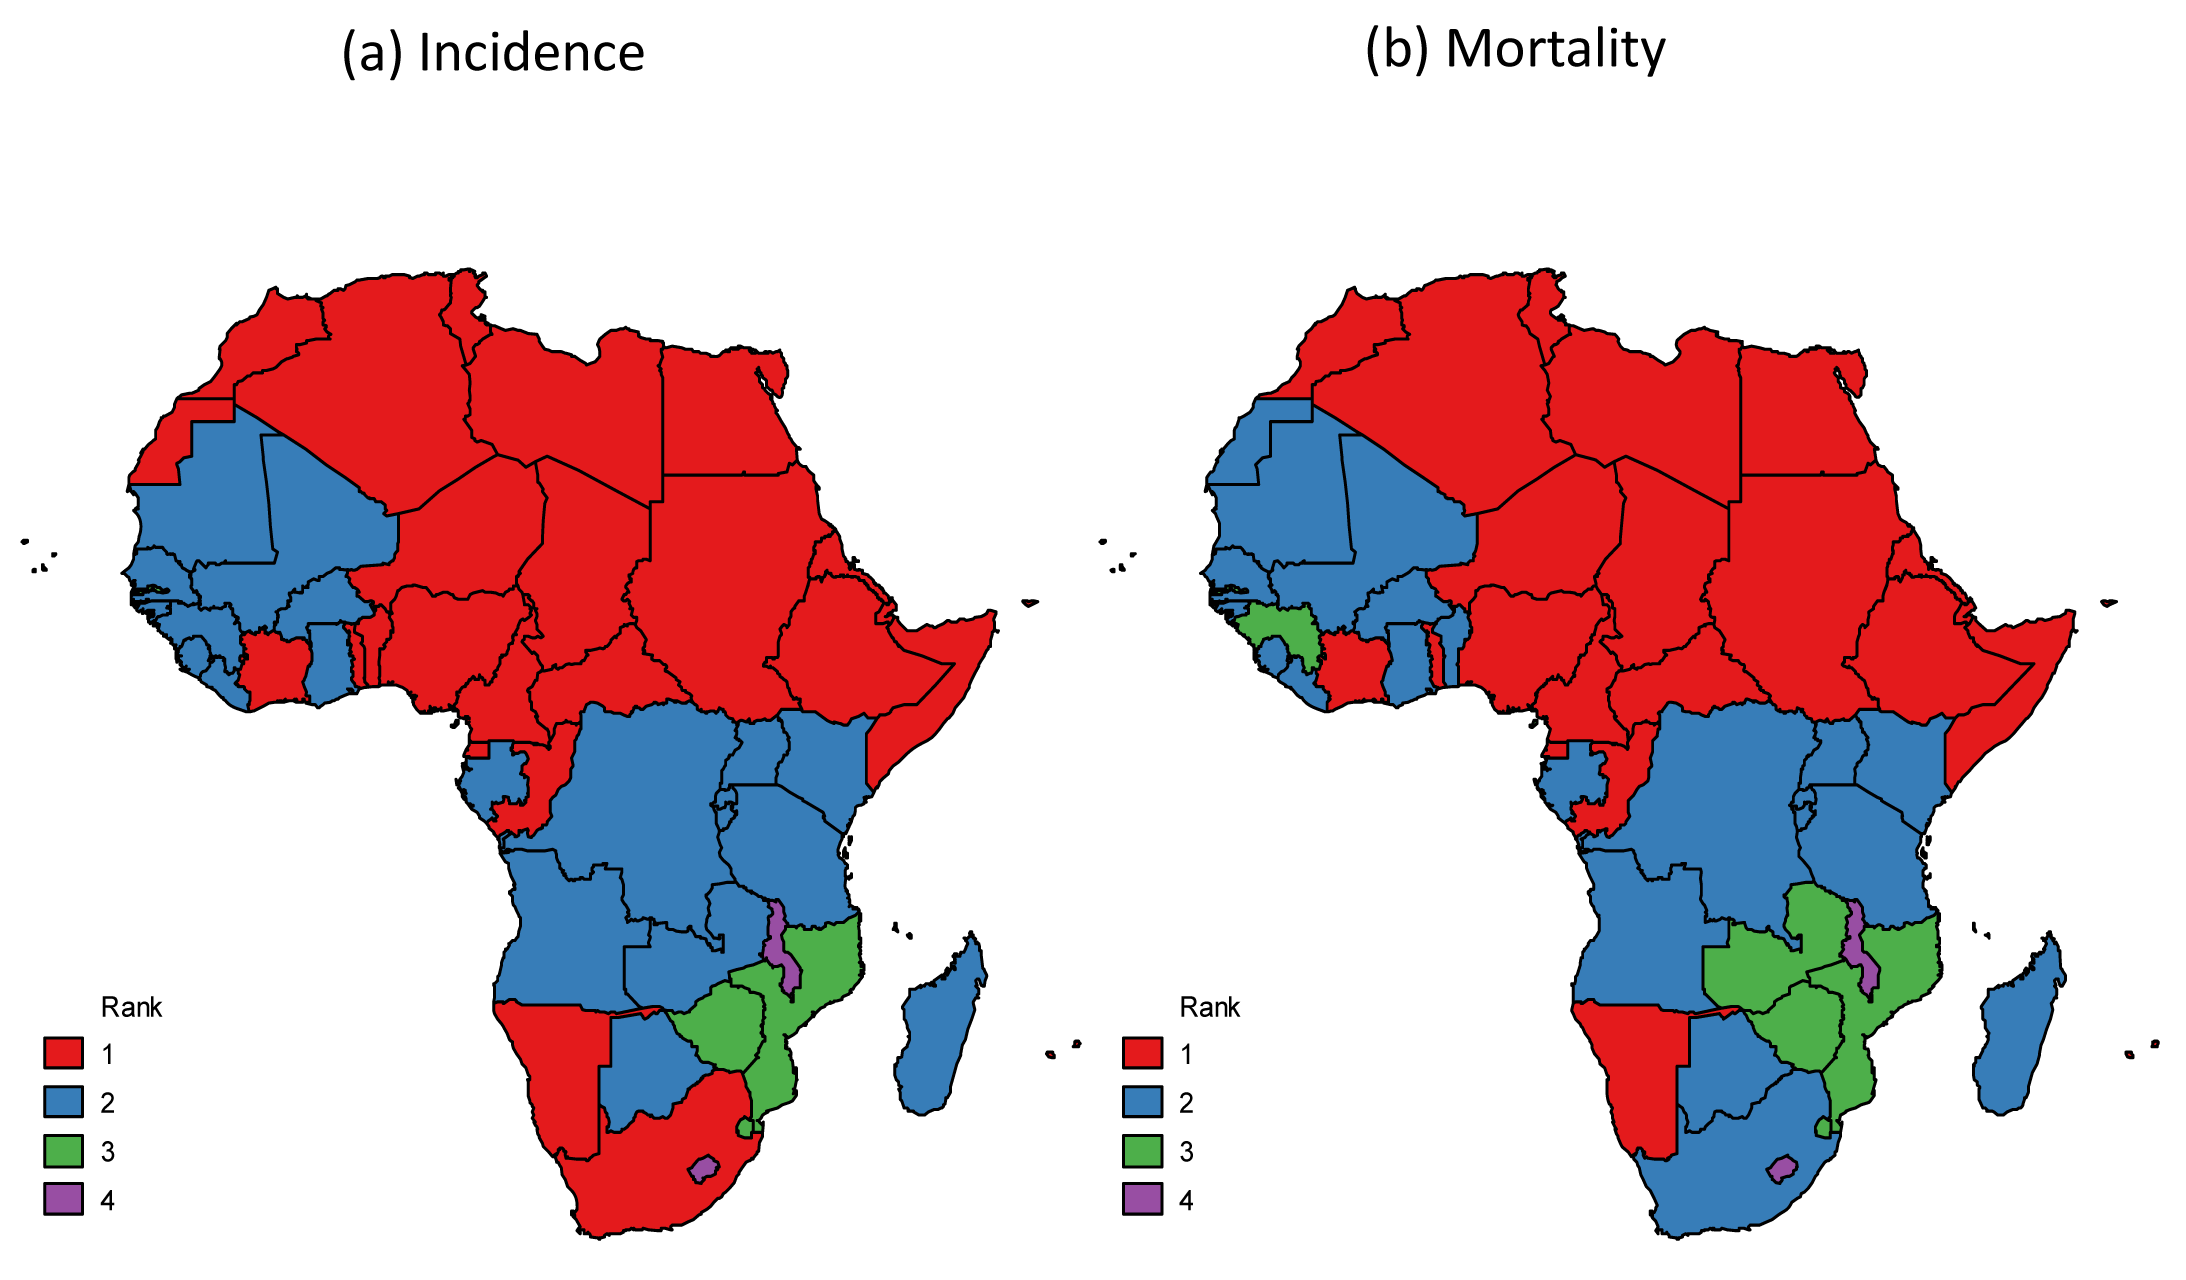 """Breast cancer ranking among women for (a) incidence and (b) mortality, Africa, 2012 <em class=""""ref"""">[1]</em>."""